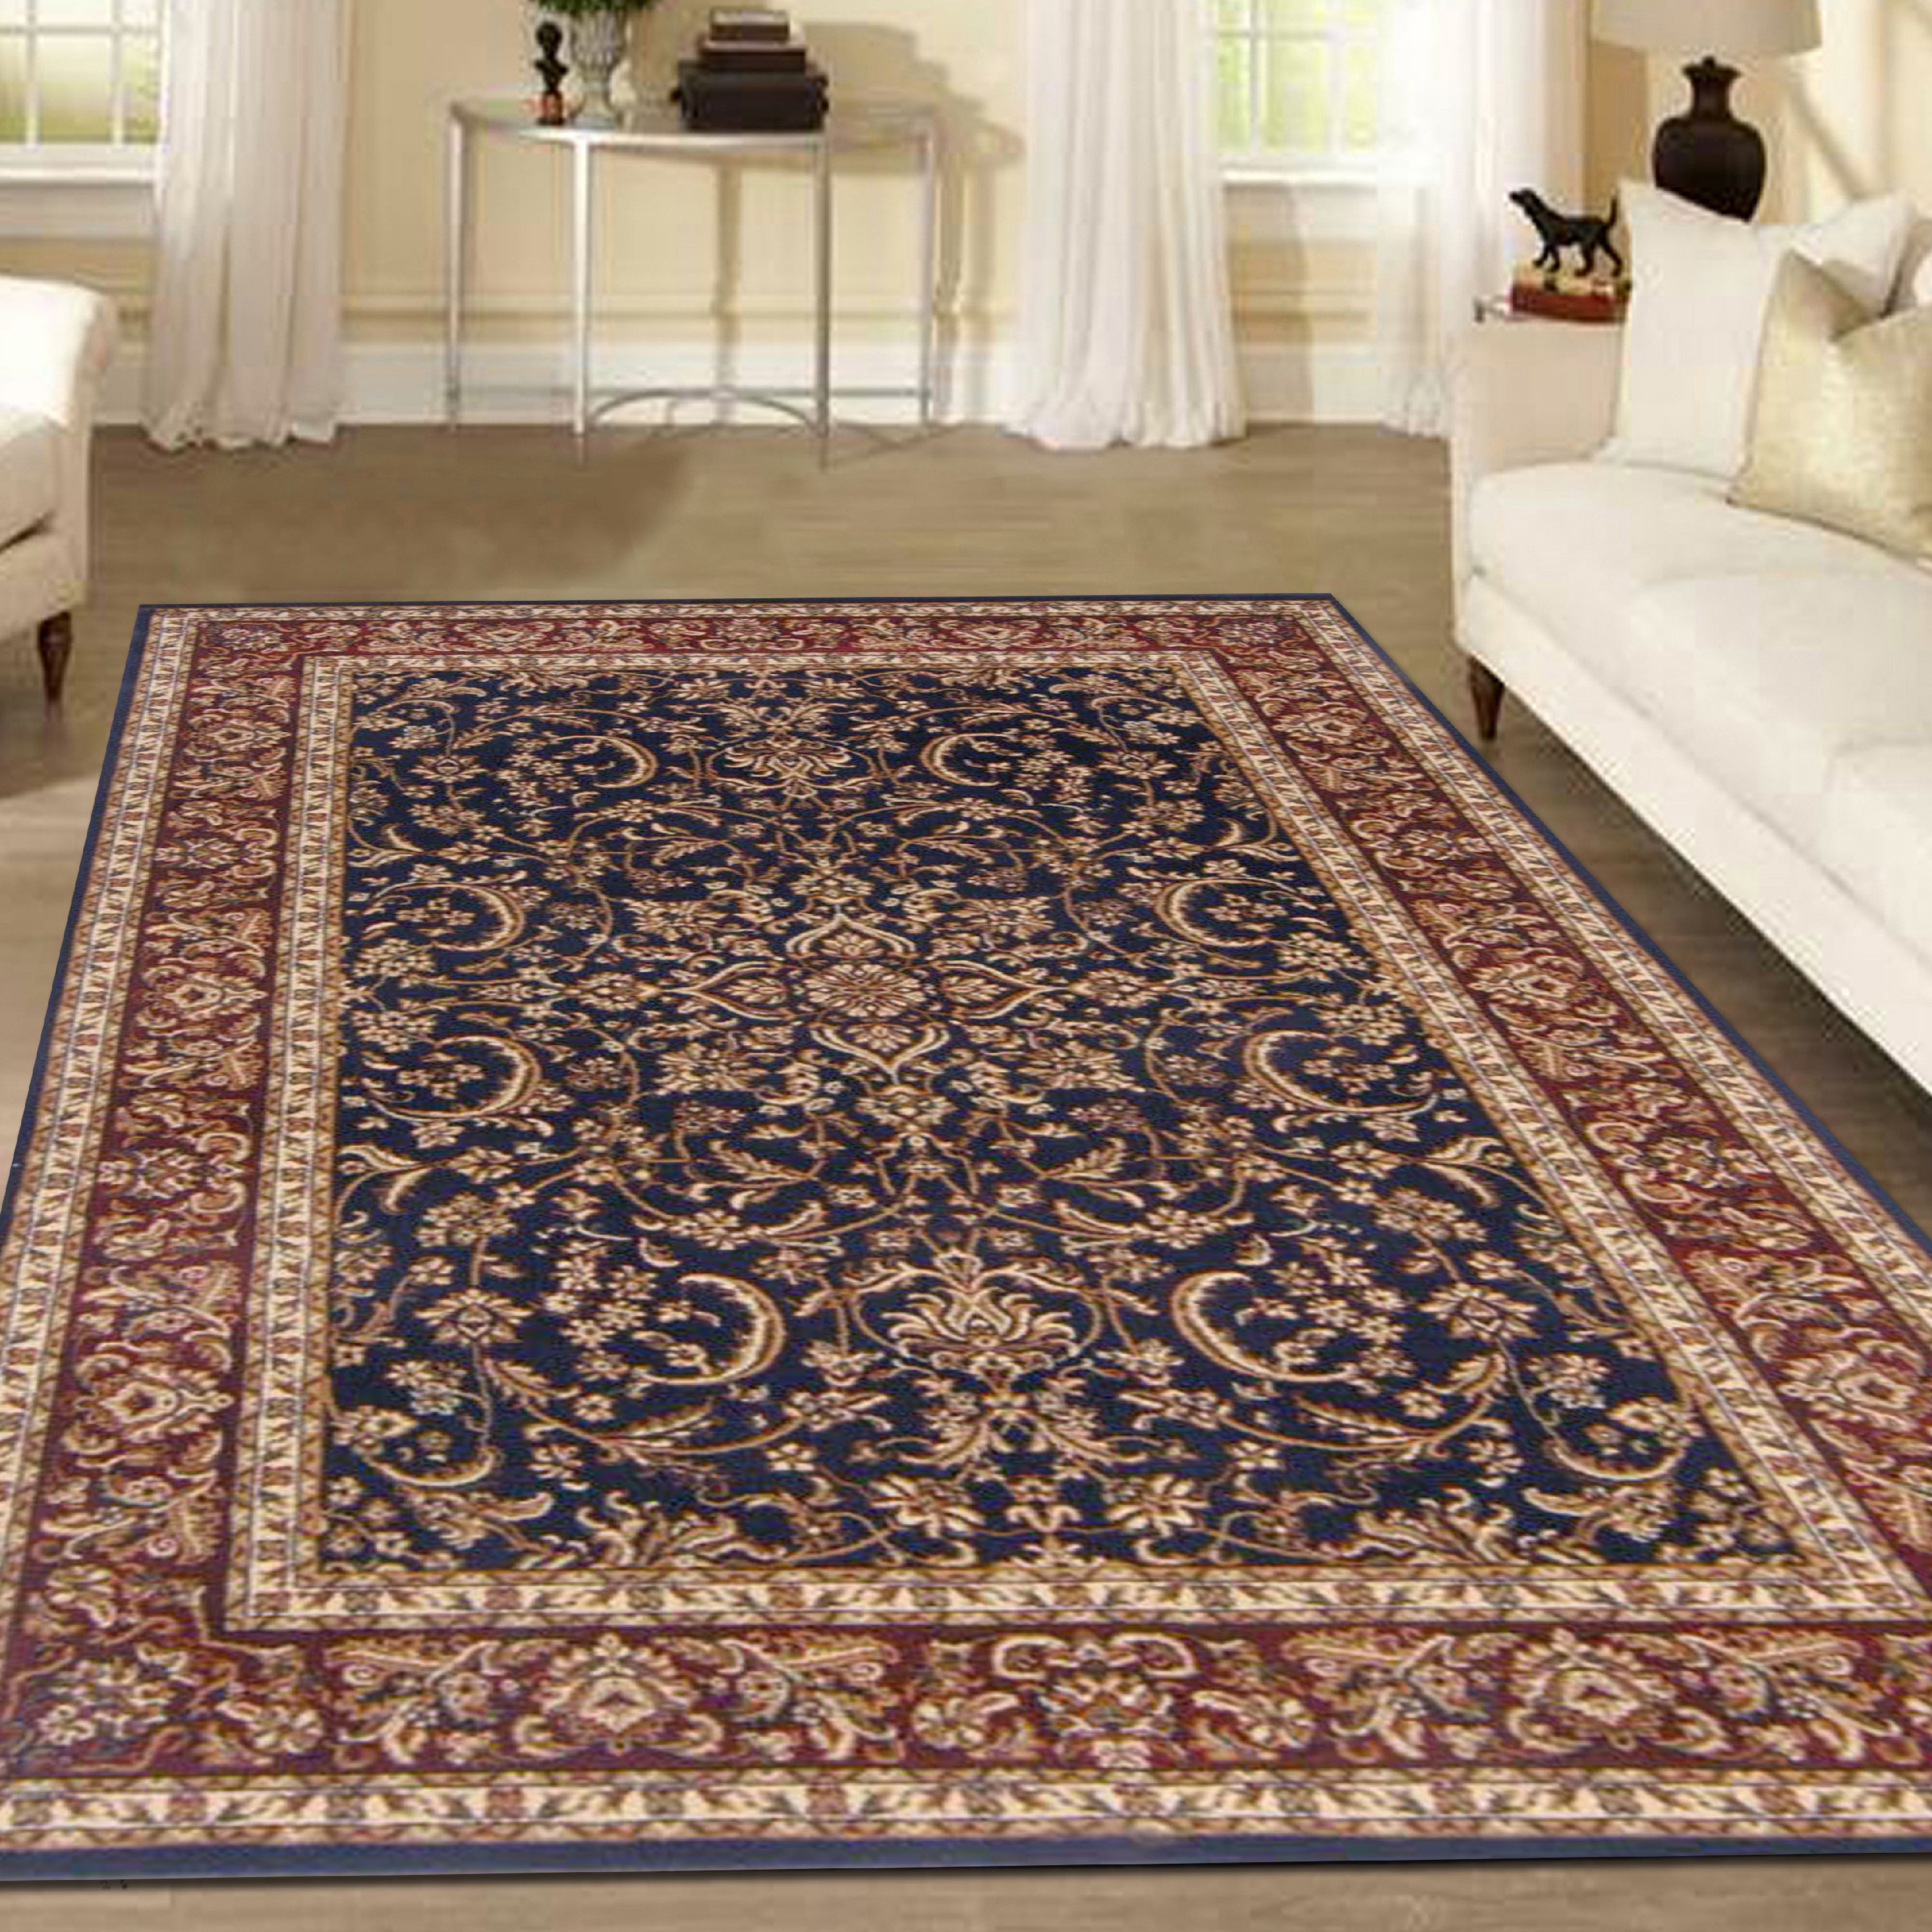 Radici USA Noble 1318 Area Rug - Blue